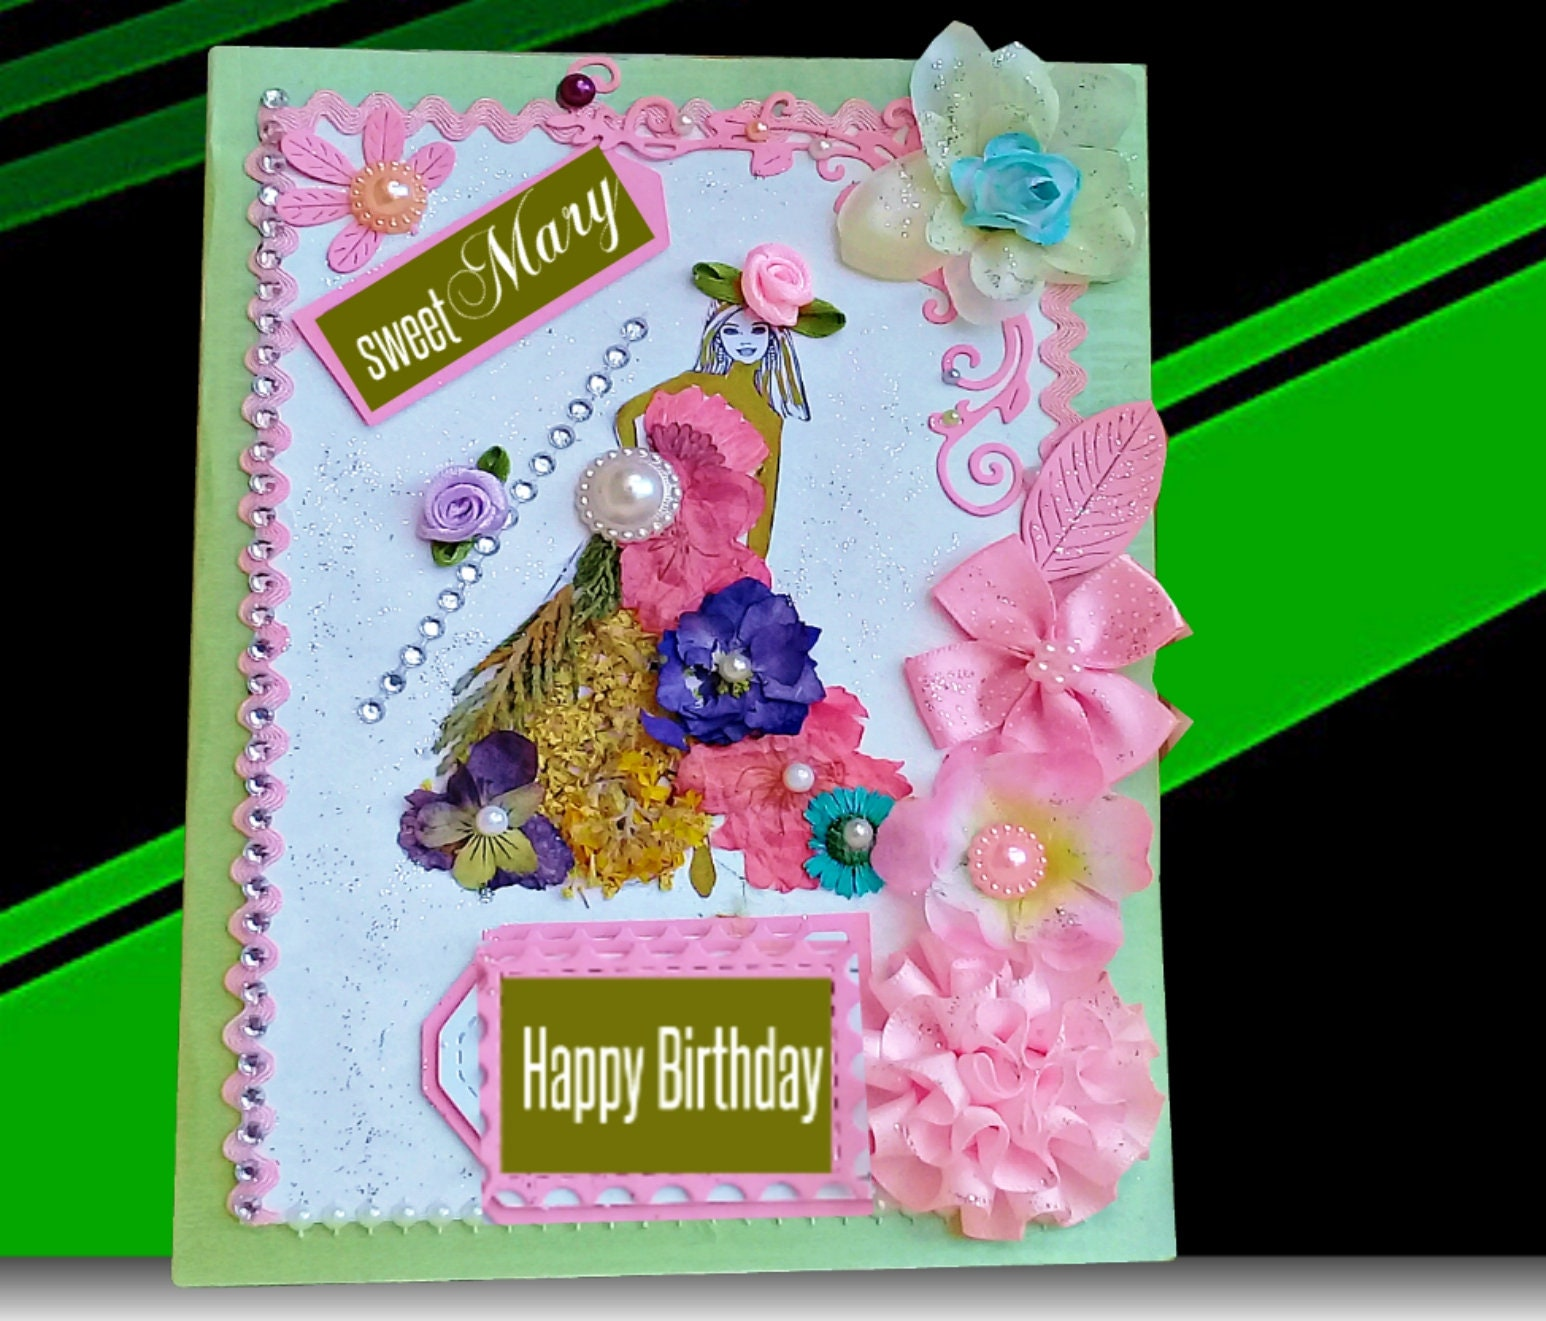 Happy Birthday Card Handmade Boxed Personalised Girl Gift Cards For Her Friend Girlfriend